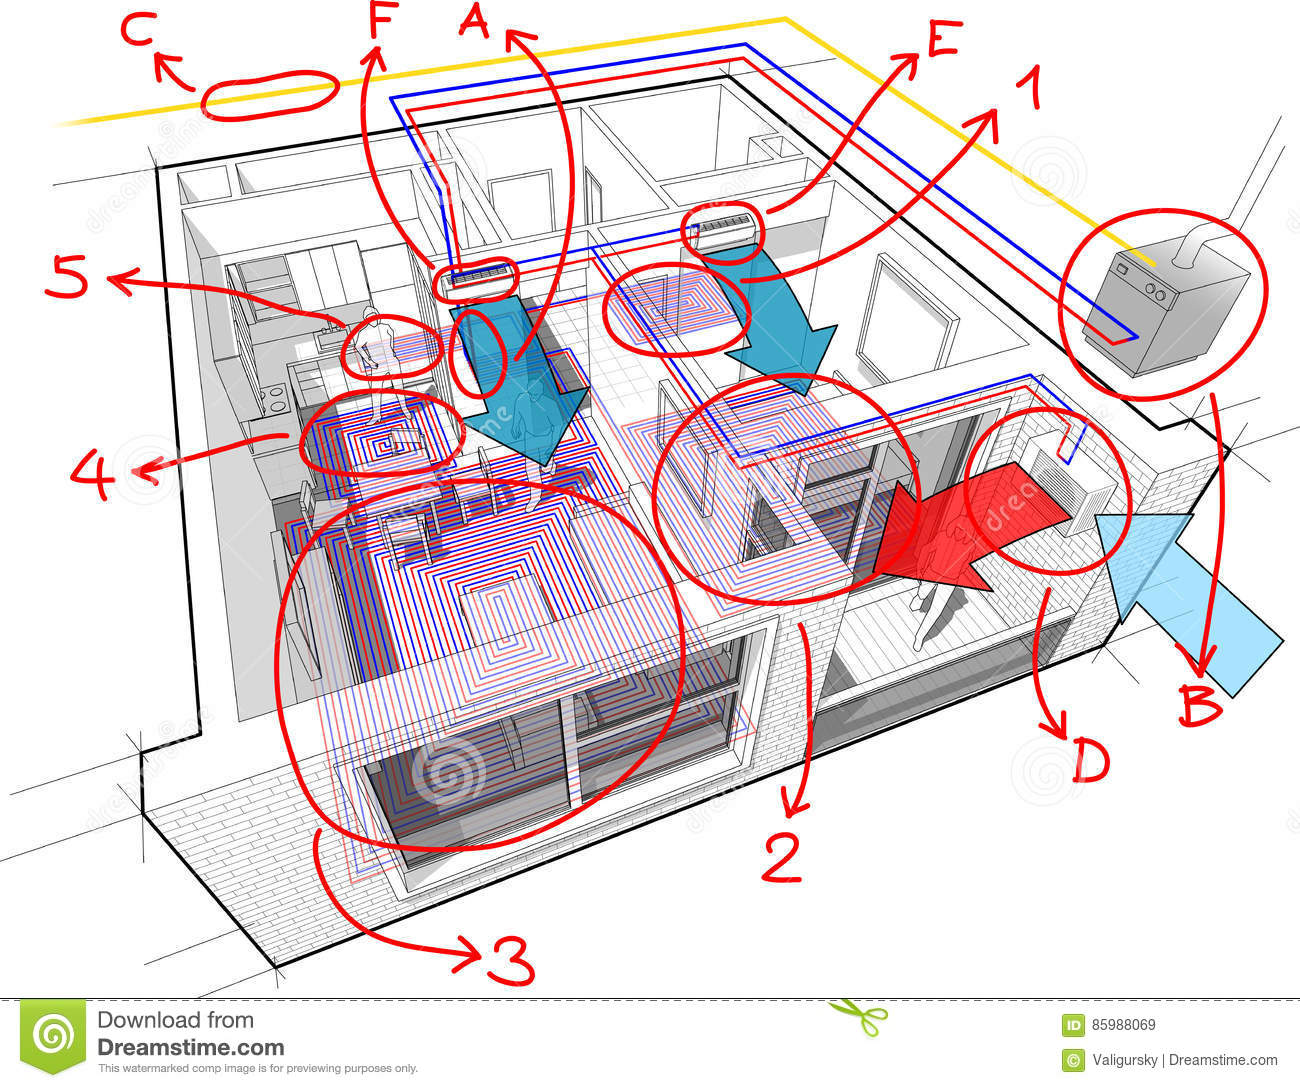 Famous Core Switch Diagram Huge Guitar Toggle Switch Wiring Flat Hss Strat Wiring Gibson Pickup Wiring Colors Youthful Bulldog Car Wiring Diagrams Bright3 Humbucker Strat Apartment Diagram With Underfloor Heating And Gas Water Boiler And ..